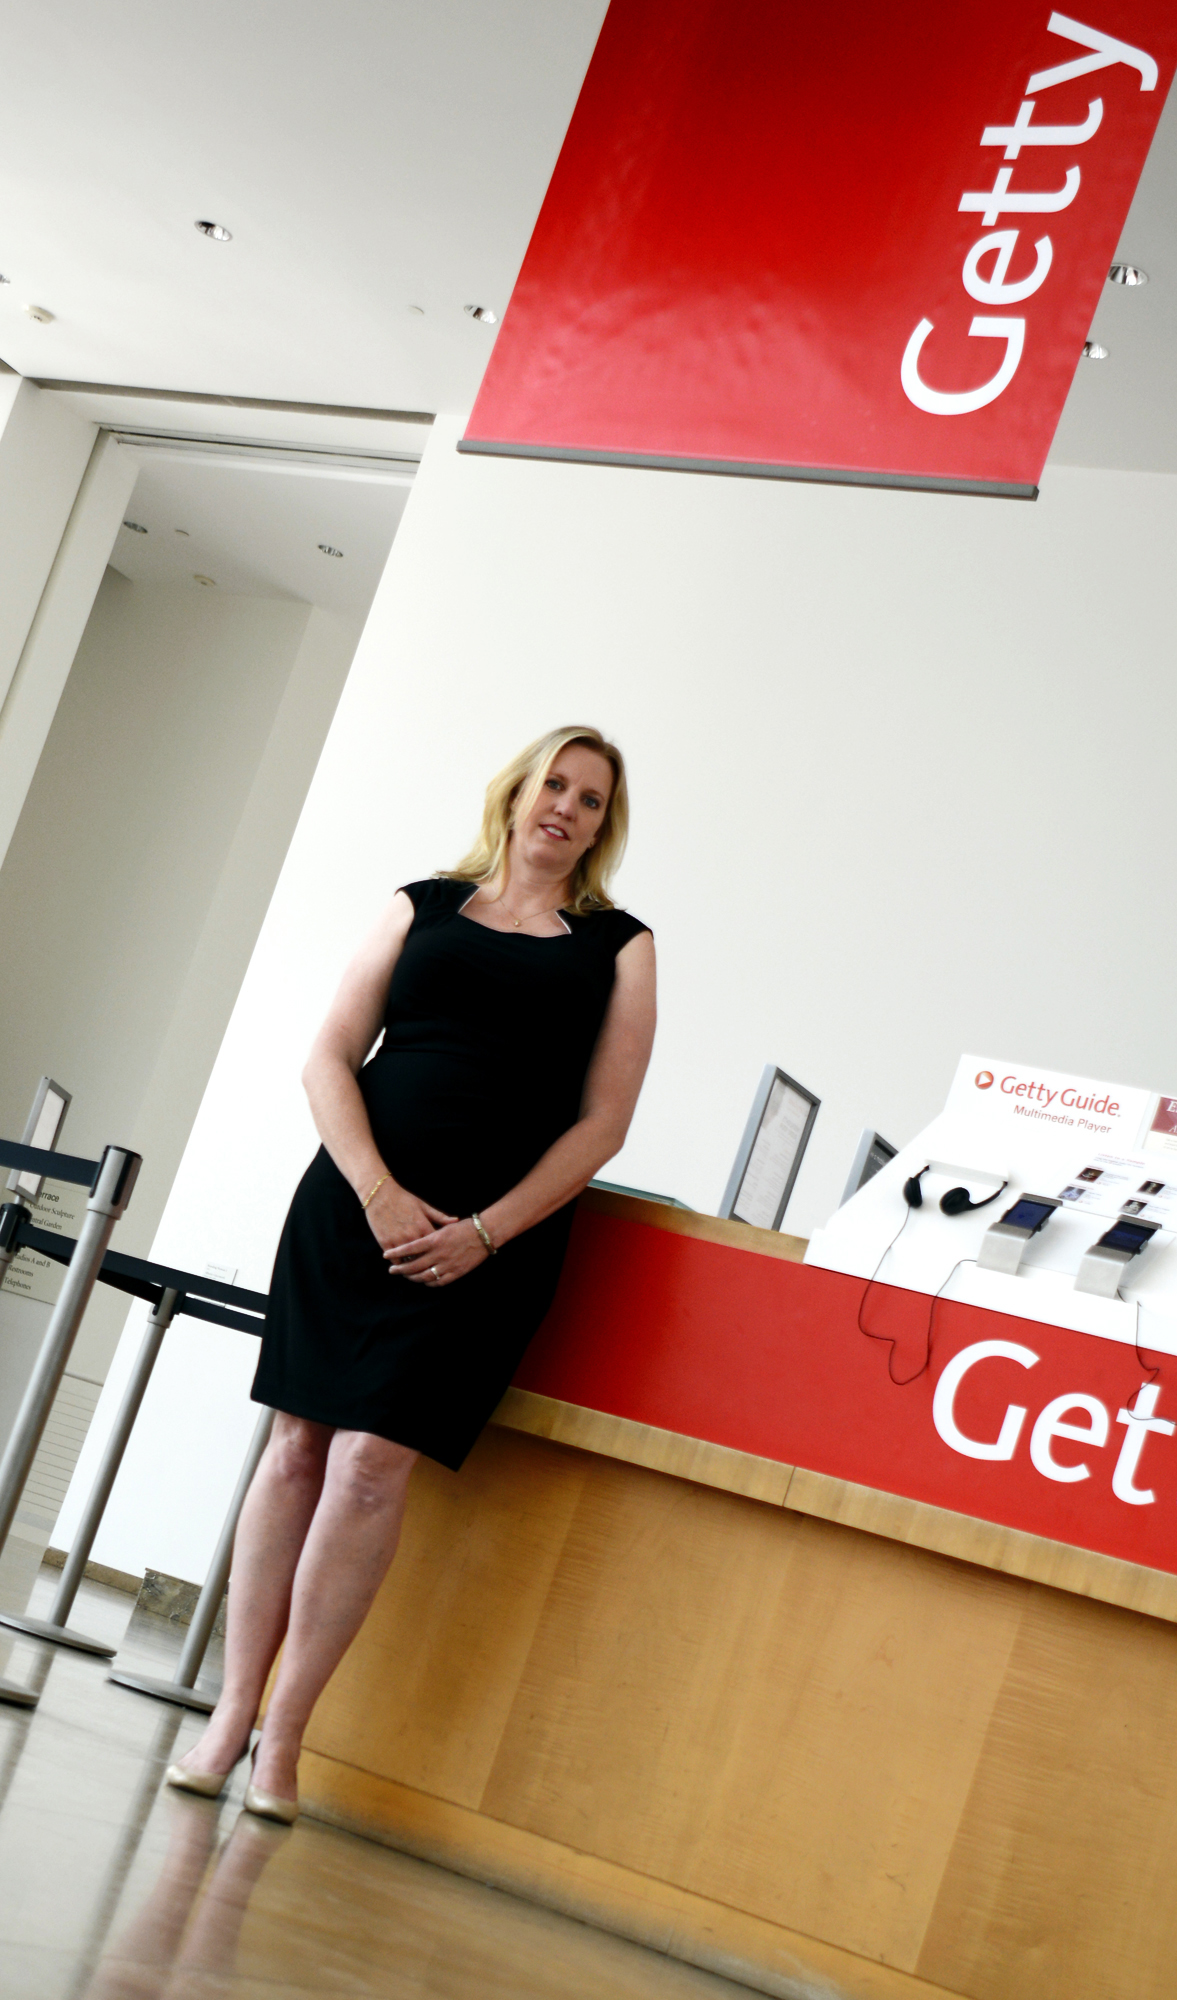 Getty publicist shares public relations, journalism experience, reinforces industry fundamentals